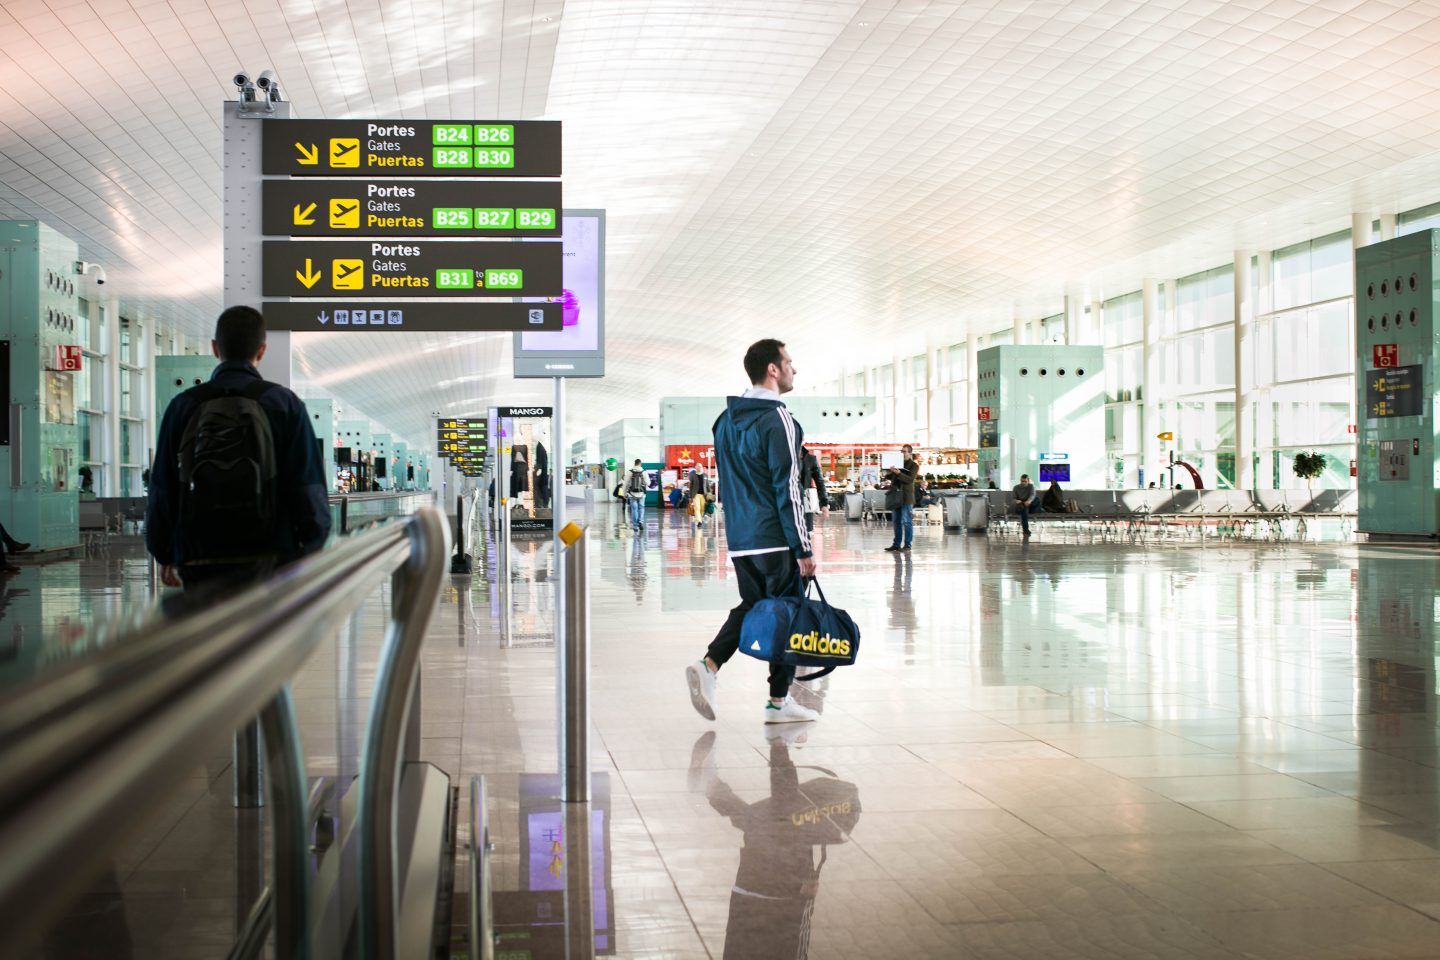 An adidas employee walking at the airport. Relocation, travel, international, working abroad, GamePlan A